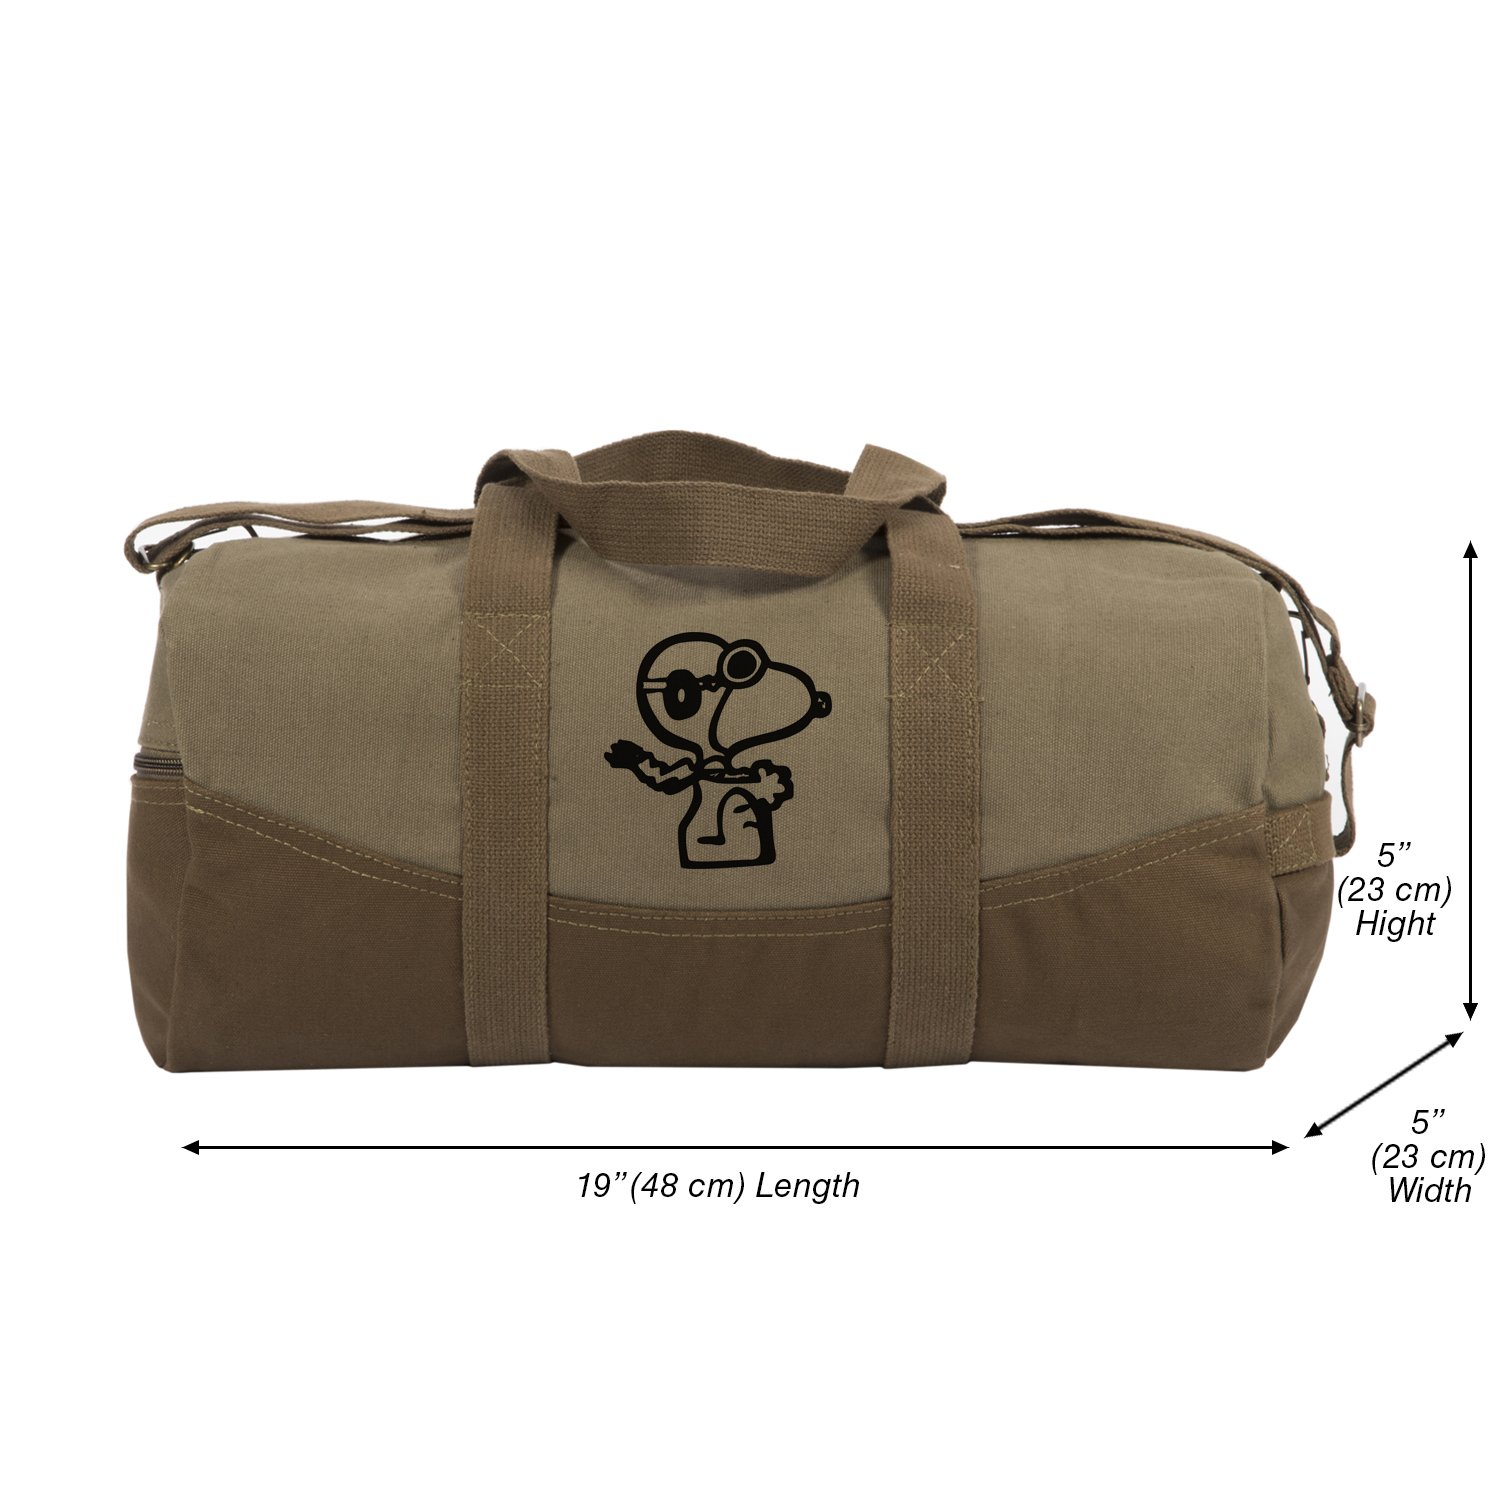 Snoopy Flying Ace Canvas Duffel Bag, Two Tone Brown & Blk with Detachable Strap